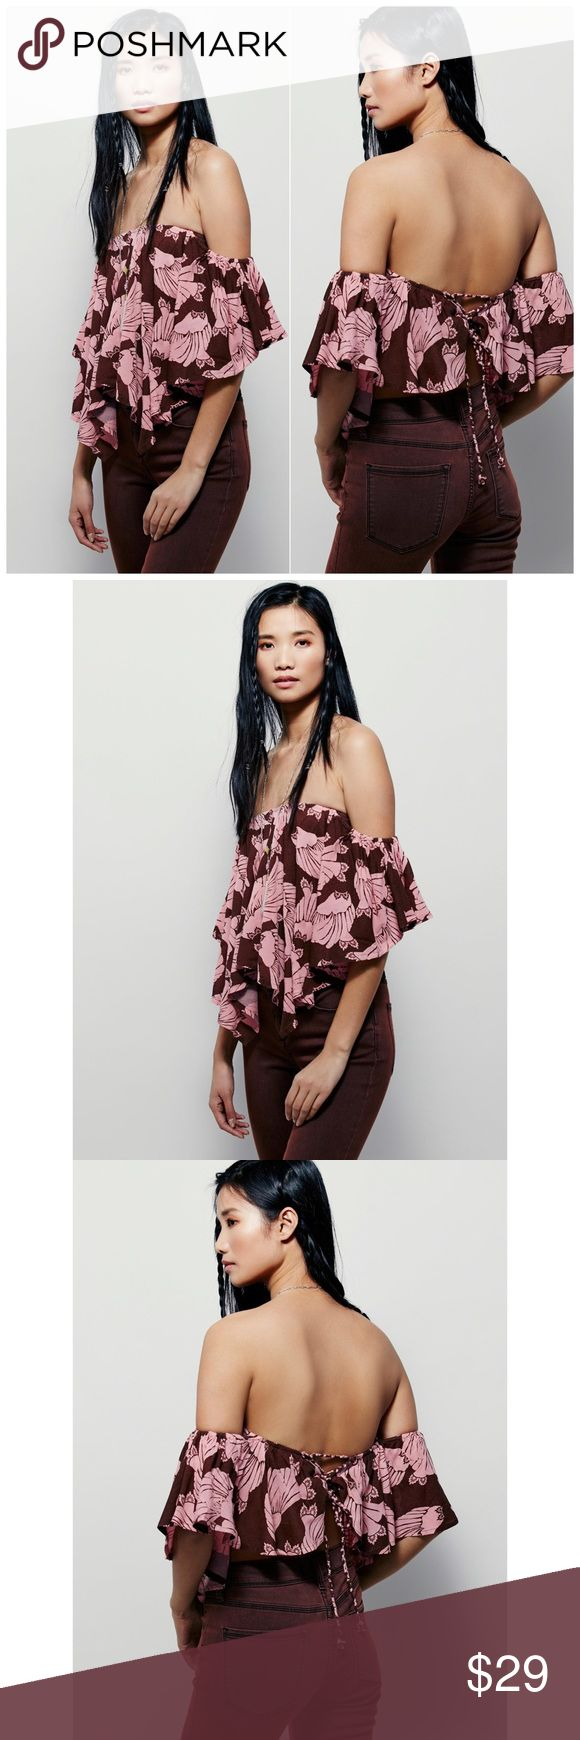 FREE PEOPLE MERPATI PRINT OVER THE SHOULDER TOP Merpati Print Over-the-Shoulder Top Retail $78   New Free People Merpati Print Over-the-Shoulder Top  Retail $78 … Pink Combo  Floaty and romantic, printed off-the-shoulder top in a gauzy cropped silhouette with an open lace-up back and built-in bandeau bra.   Free People   100% Rayon  Hand Wash Cold  Made in Bali    Price tag removed and label marked to prevent retail store return. Free People Tops Blouses